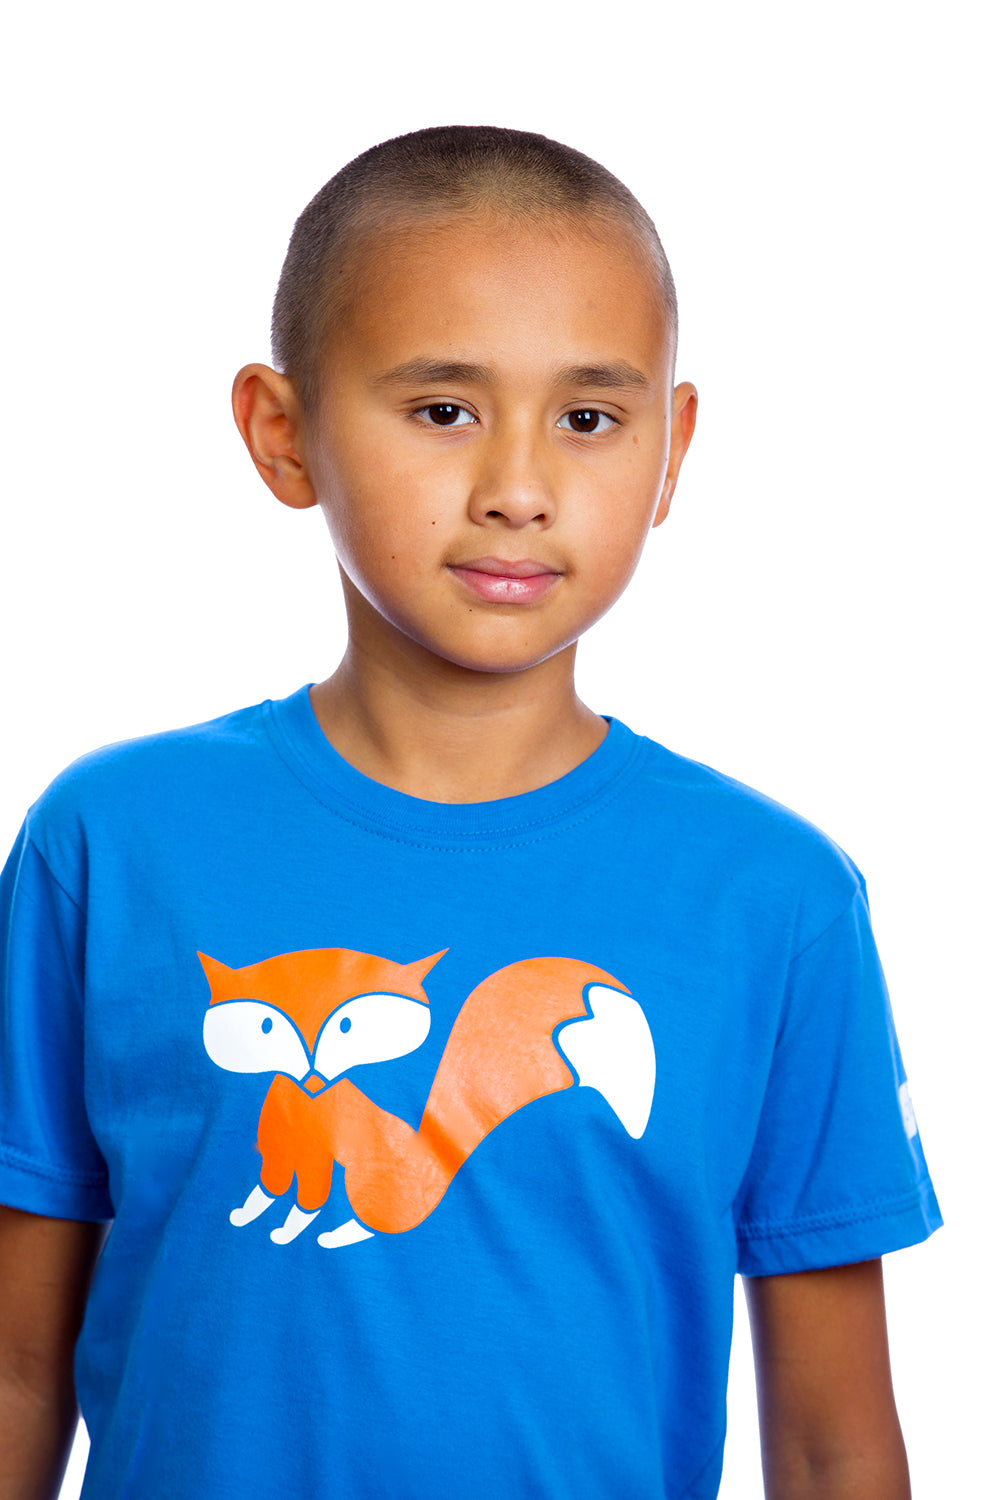 Kids Fox Shirt Graphic Tee Baby Tshirt | Organic | Made in Canada Blue Bleu